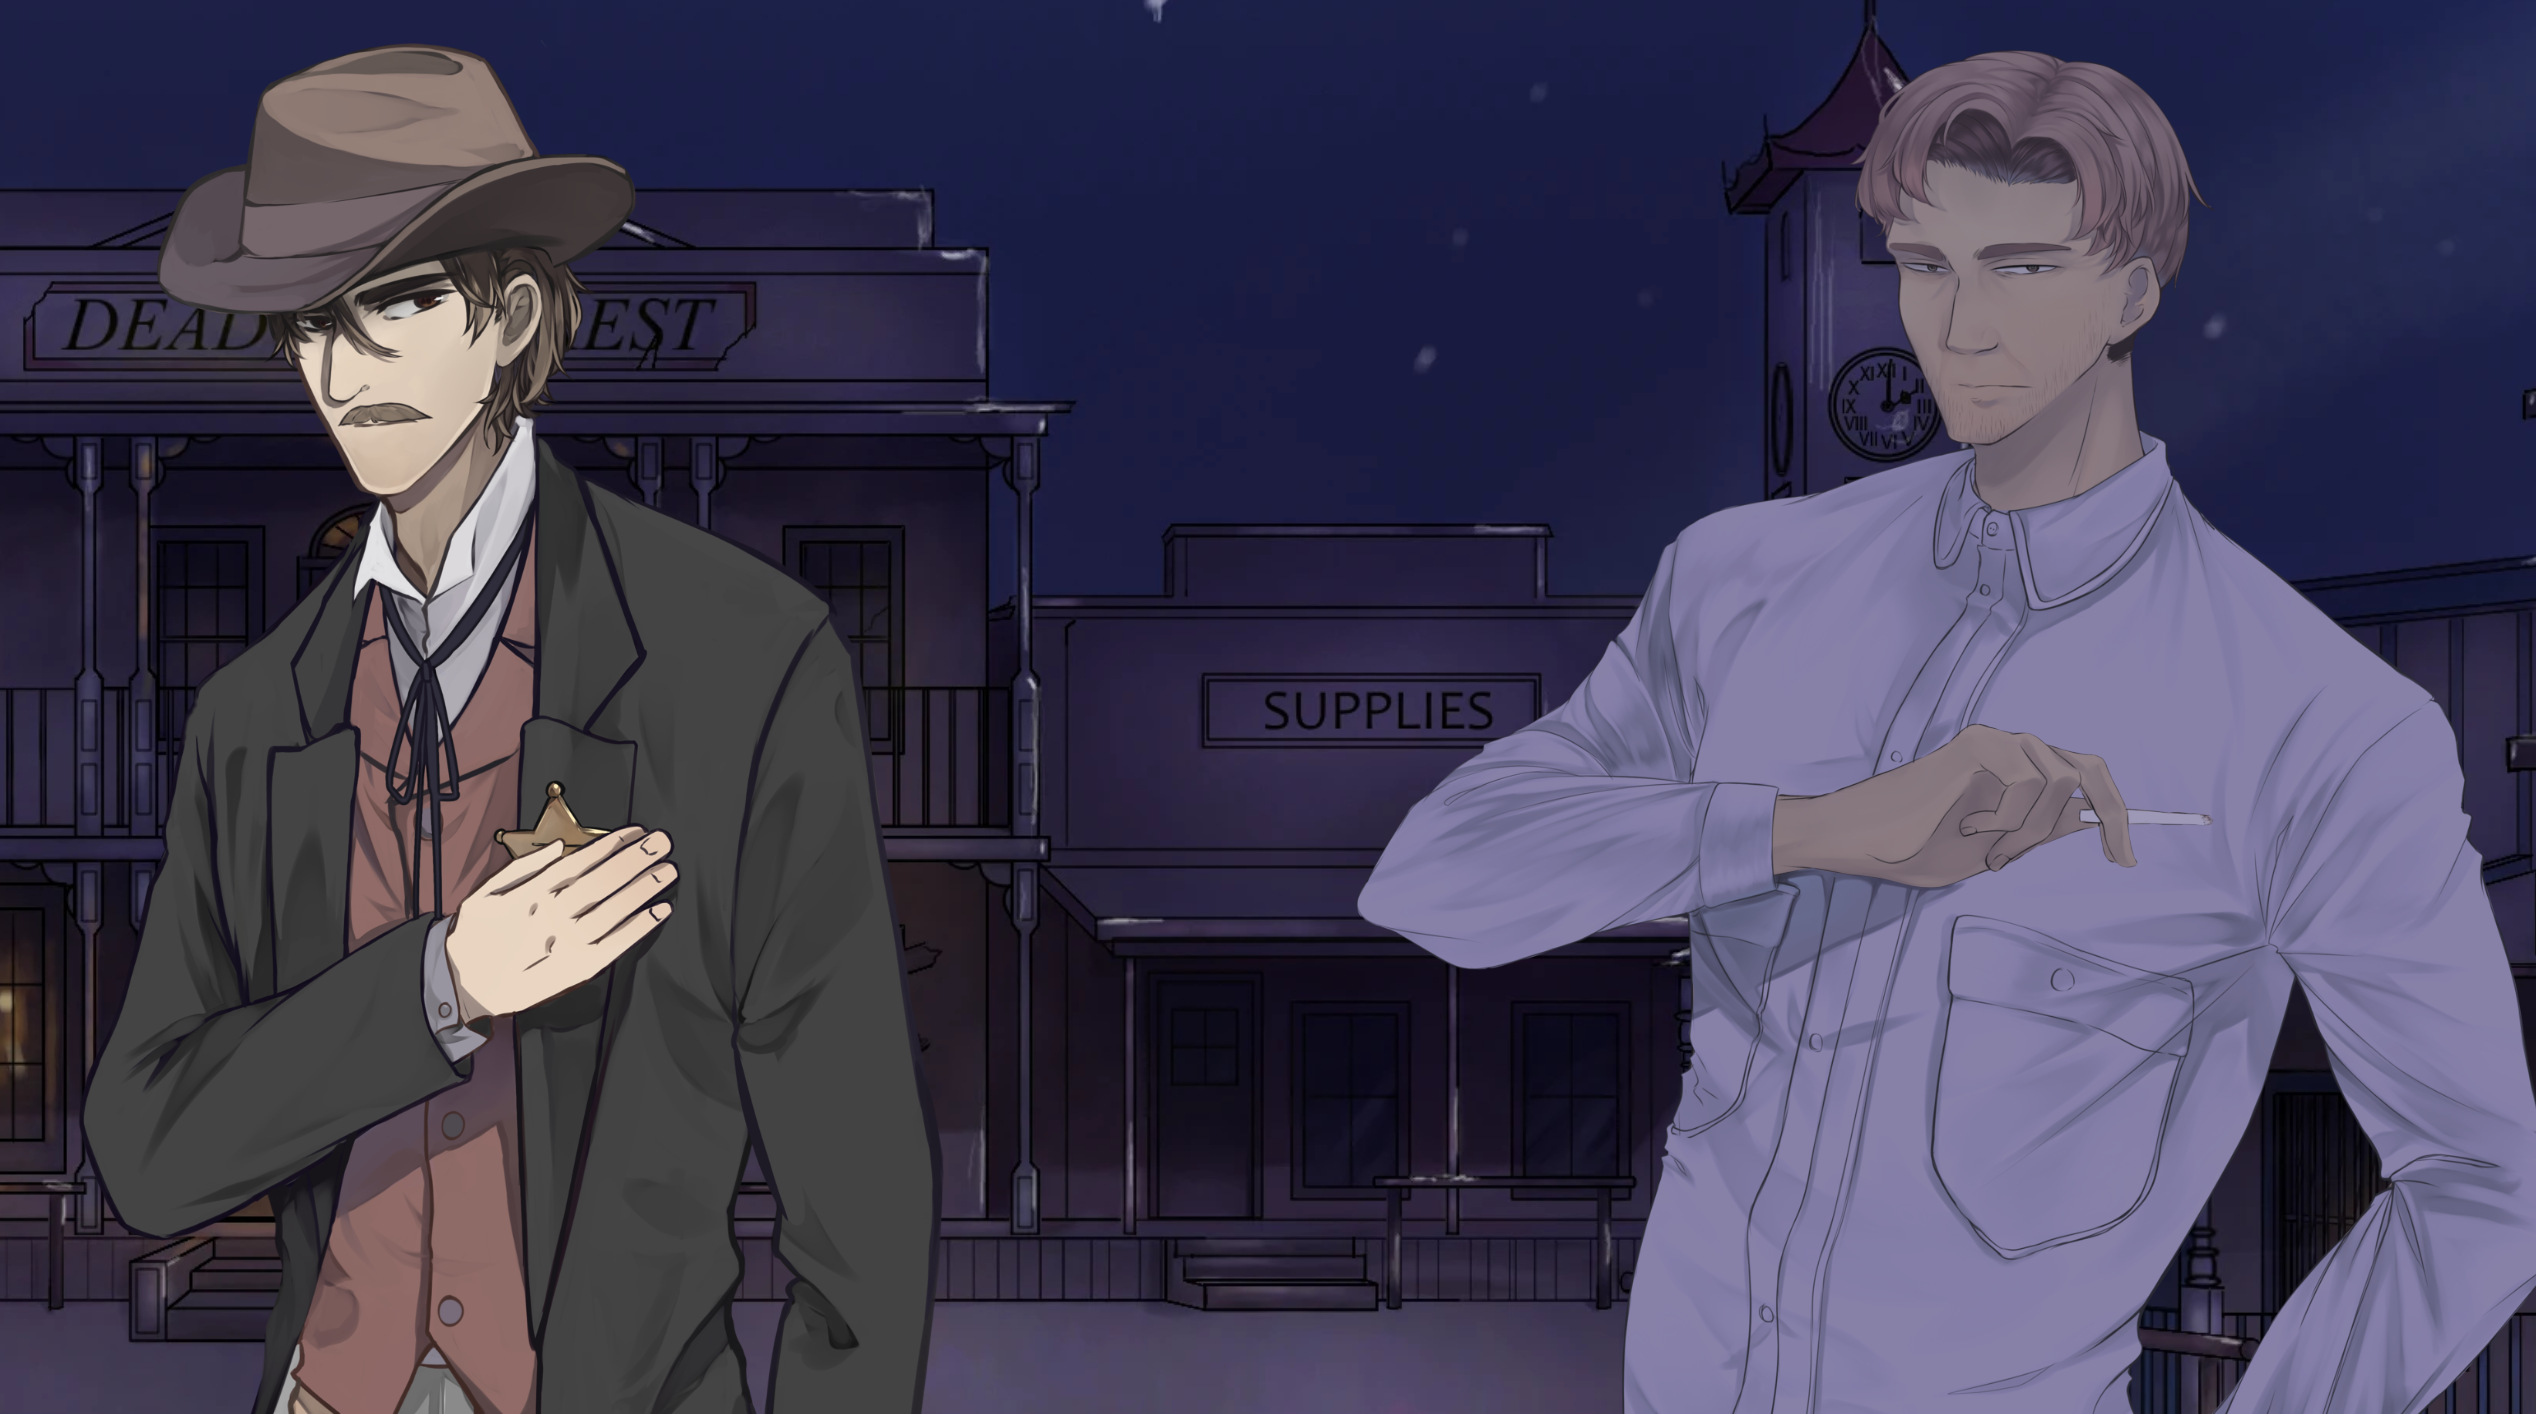 cartwright at left and hollis with night tint at right, with night town background